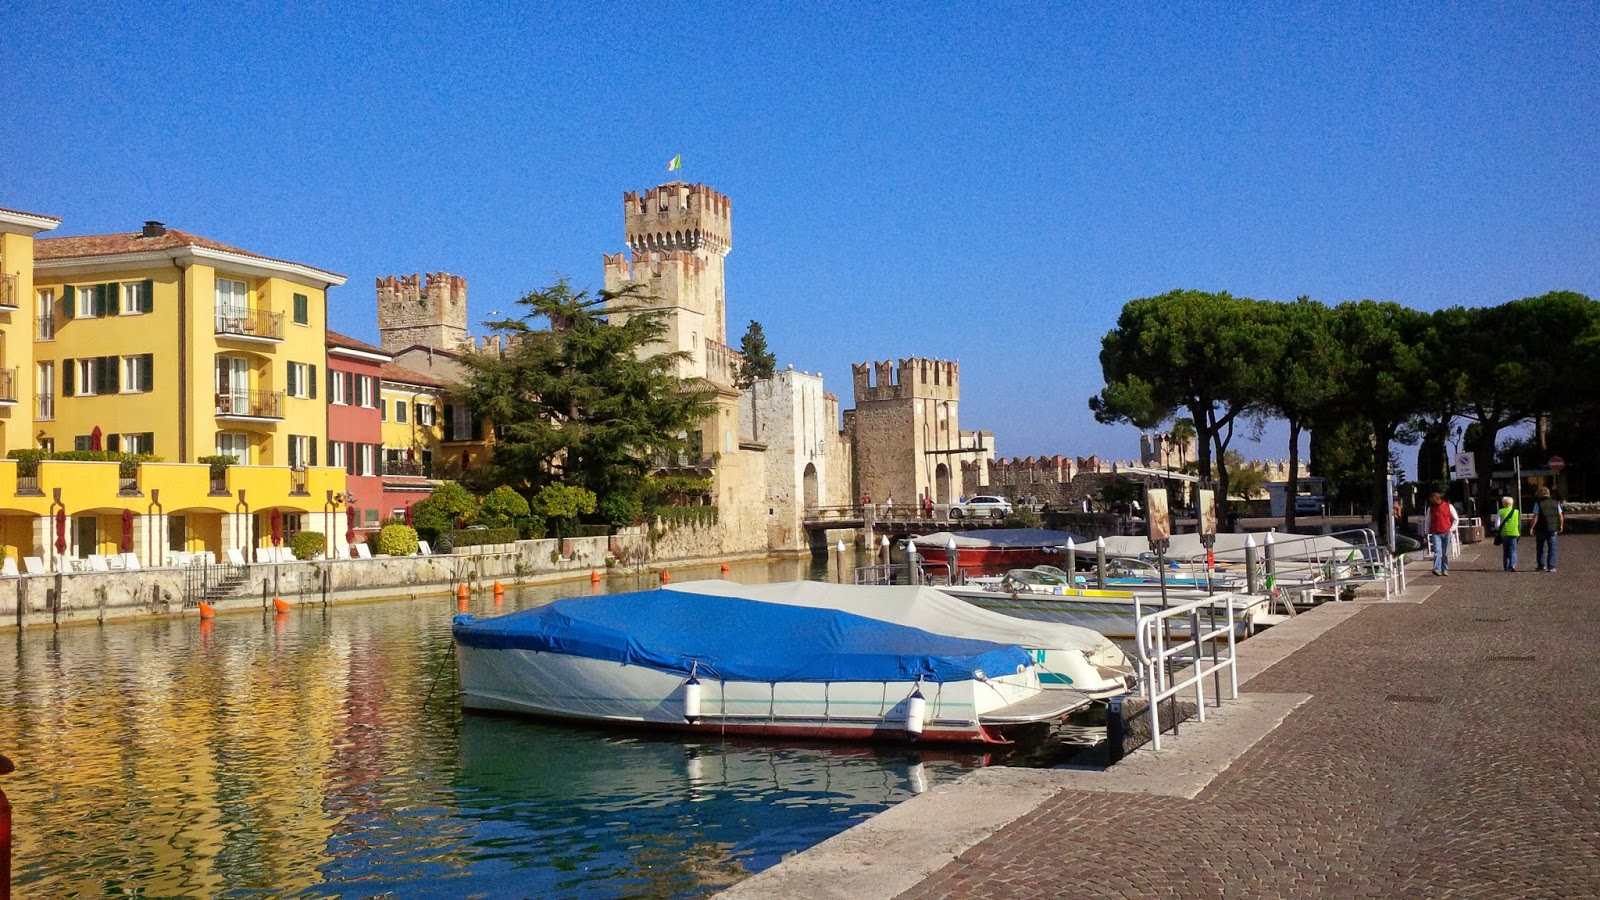 Sirmione's castle with boats in the harbour